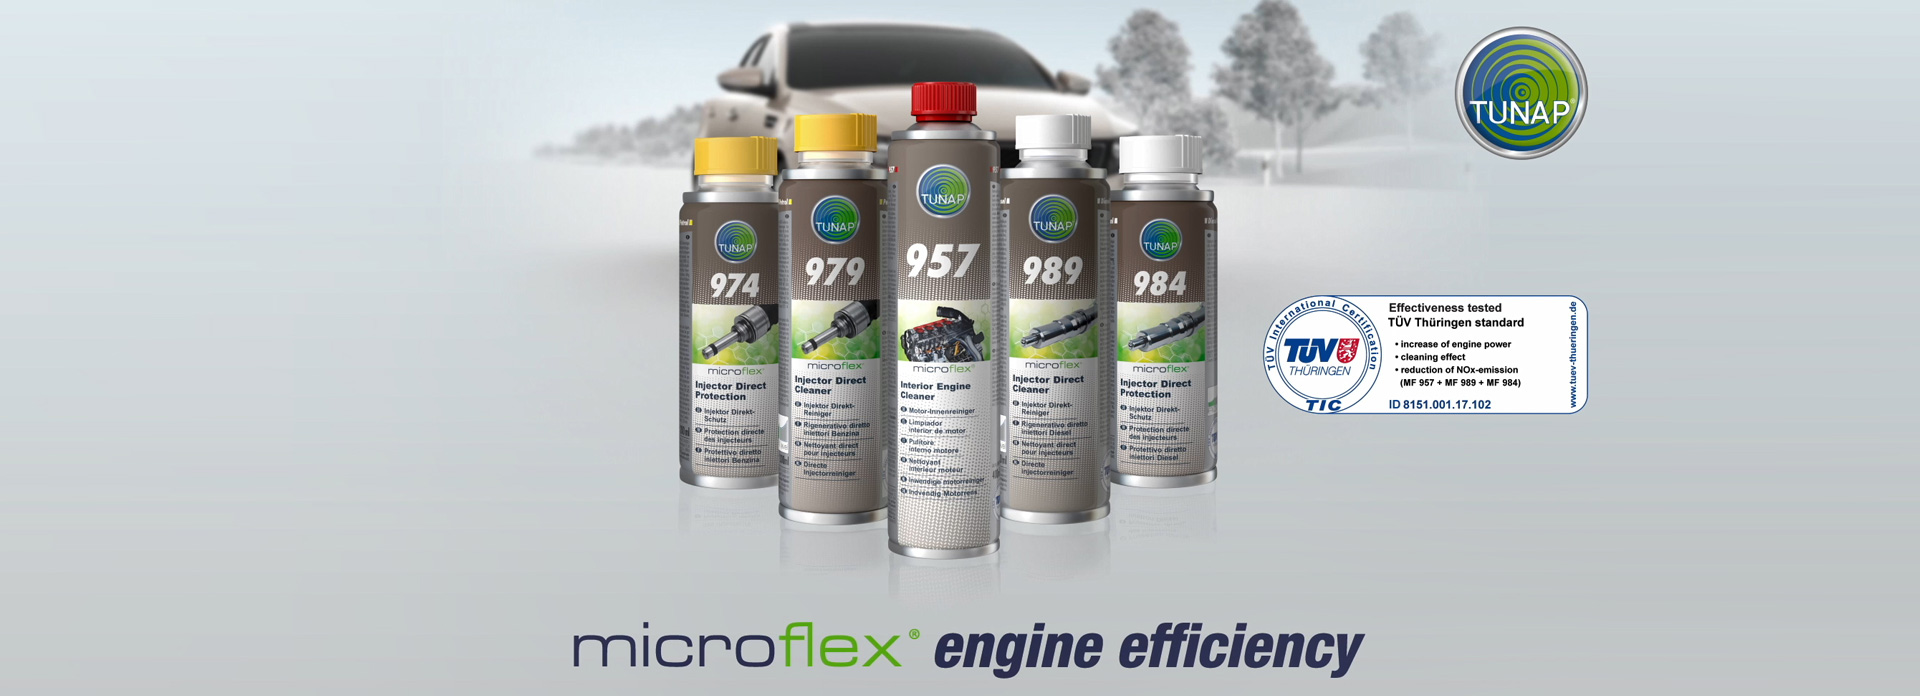 https://www.jasmin-maziva.hr/Repository/Banners/largeBanners-microflex-engine-efficiency-122018.jpg